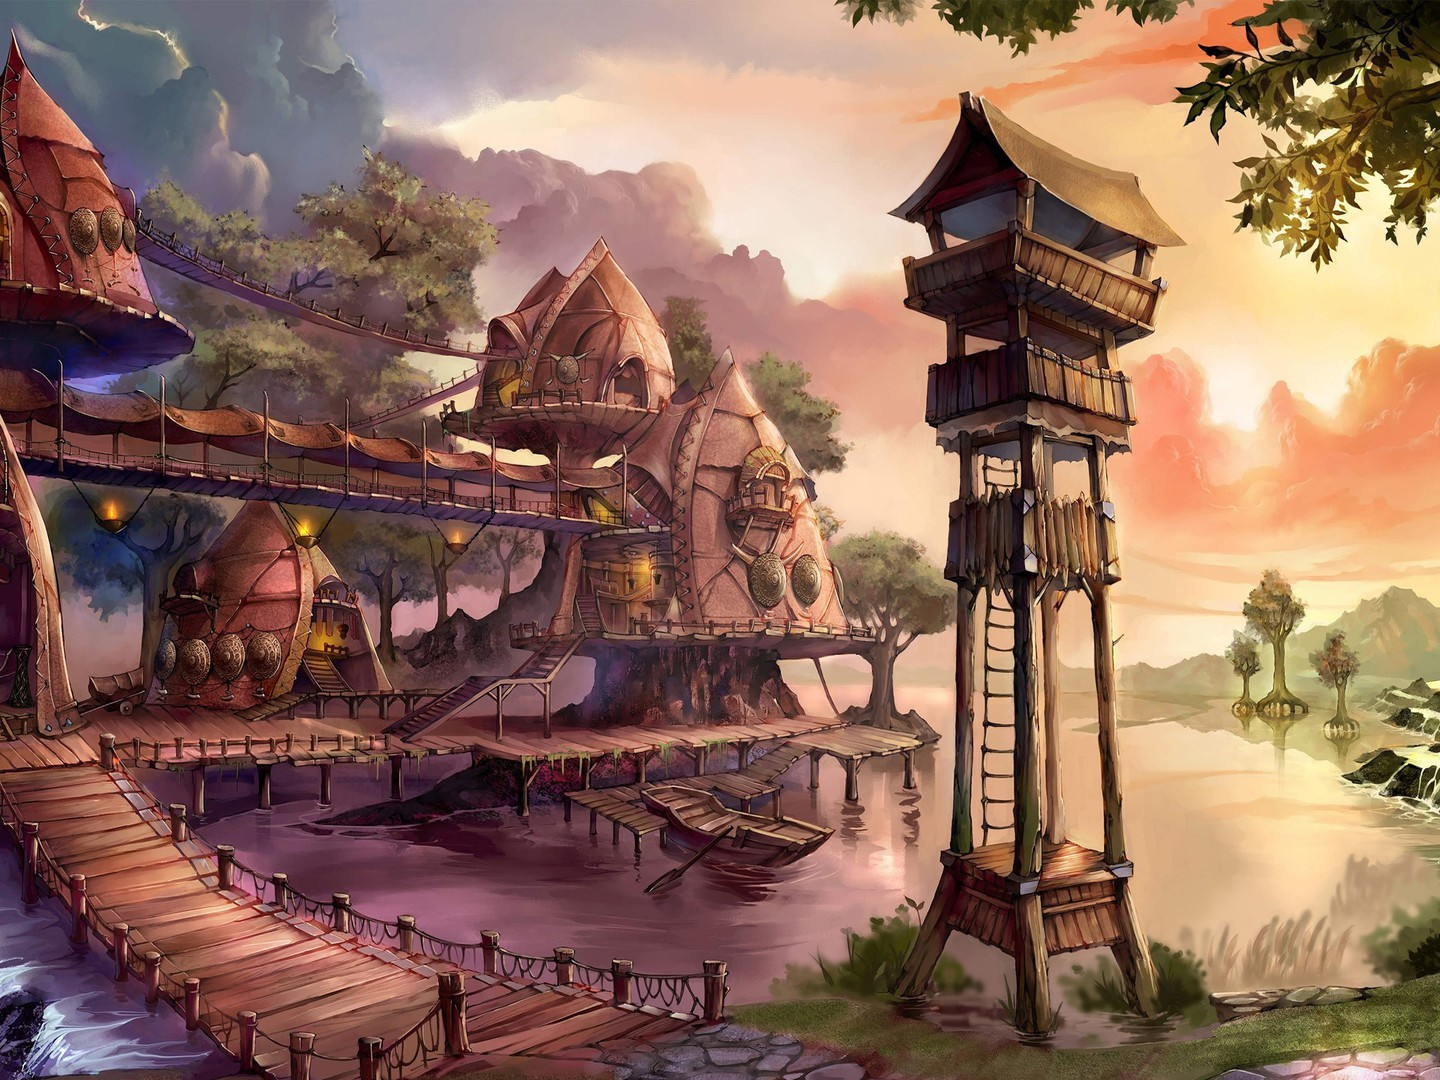 Fantasy village wallpaper 6664 pc en - Art village wallpaper ...